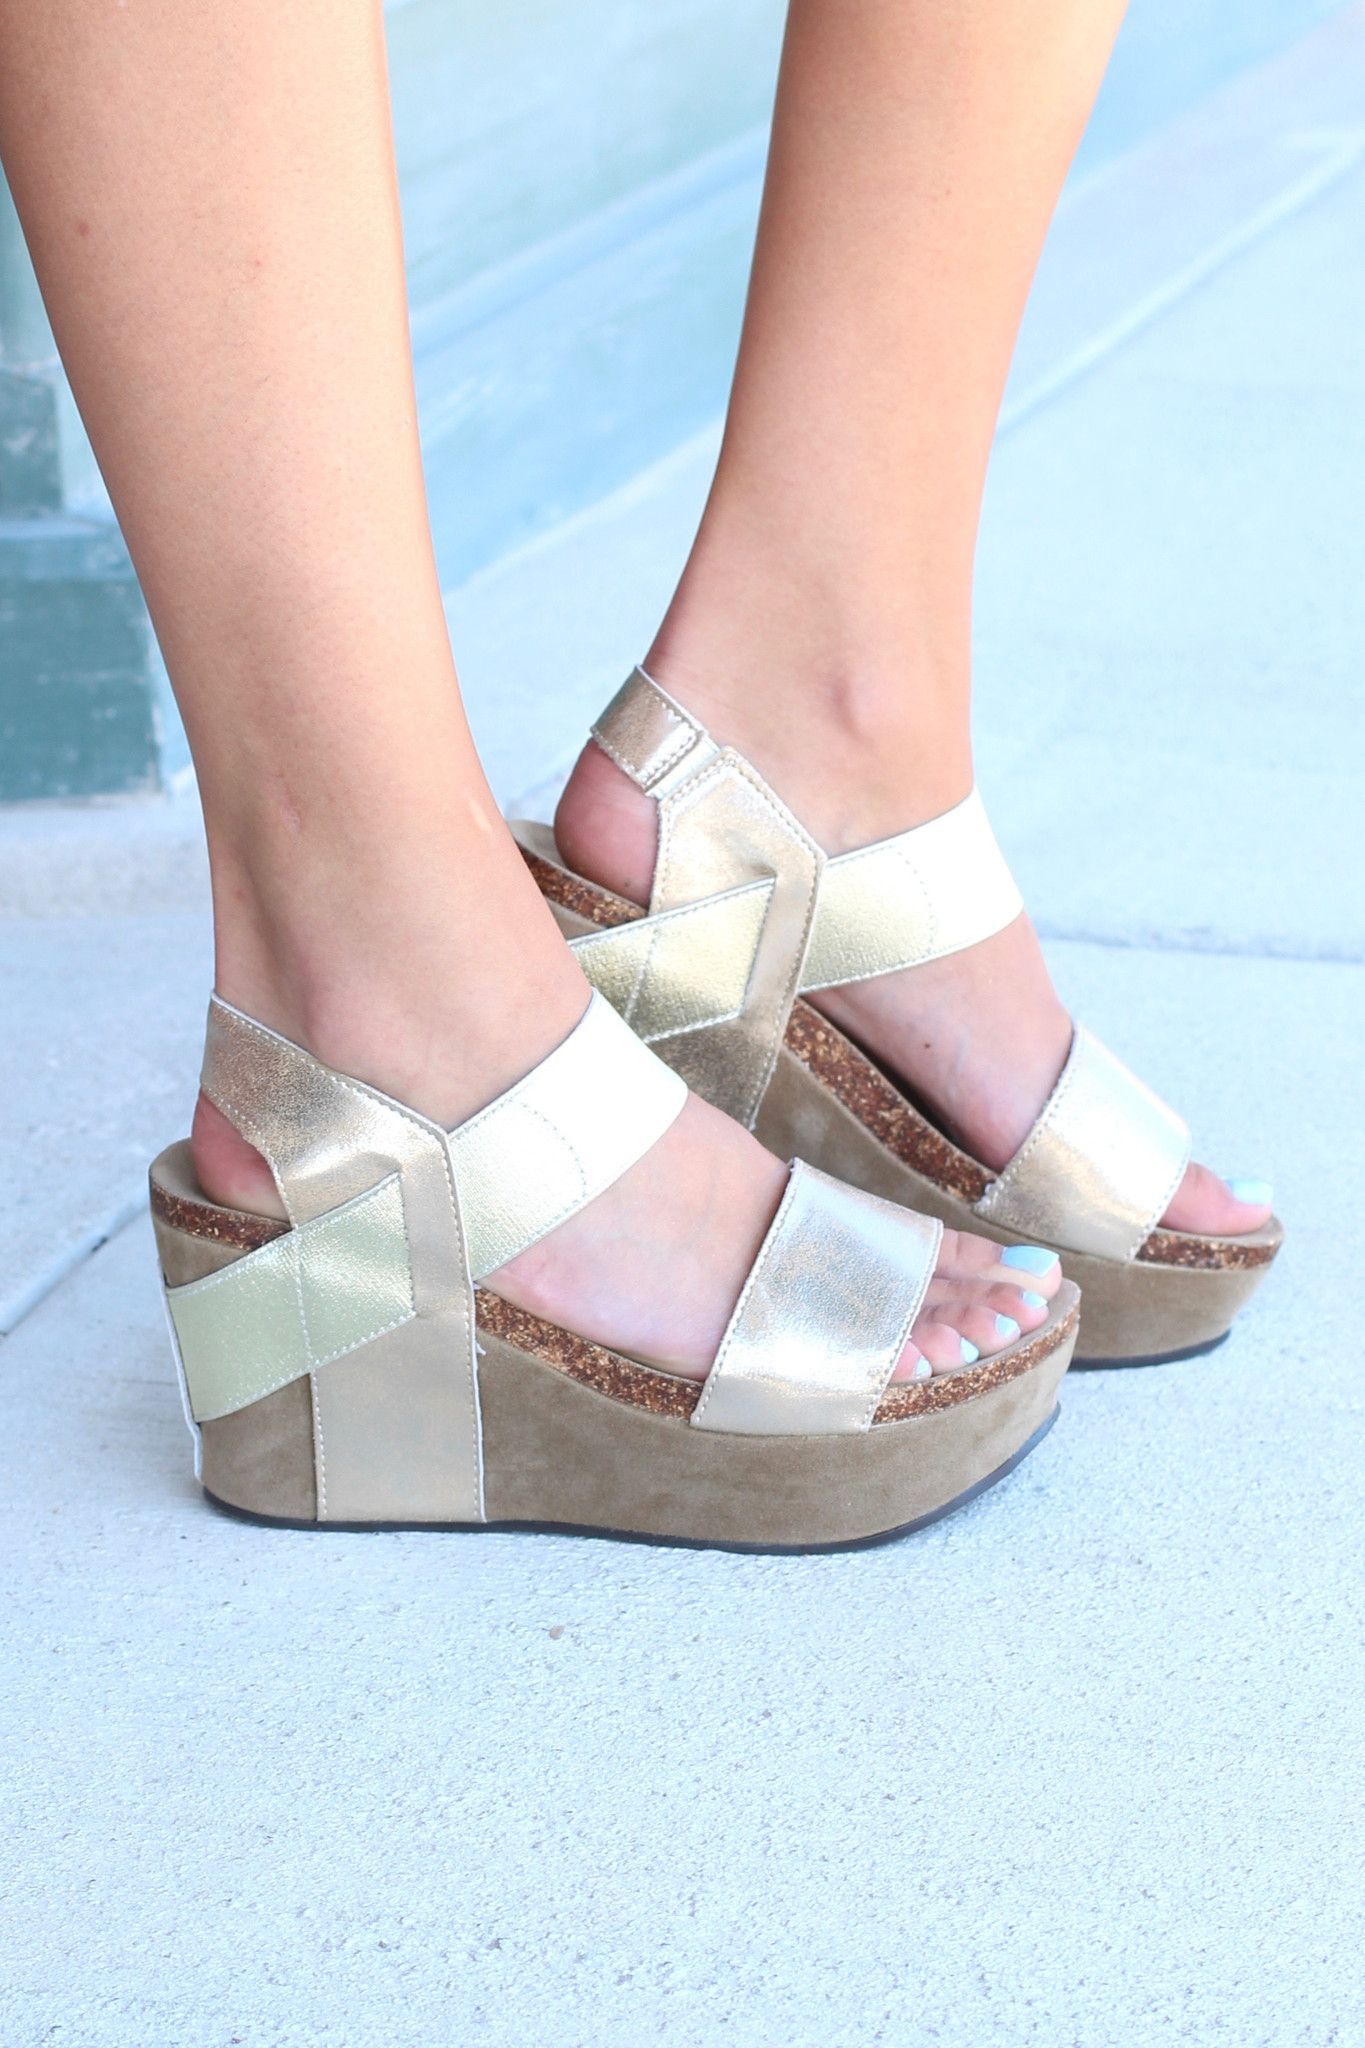 74a631671946 The sandal wedge of the season! This designer inspired look is super  comfortable and features